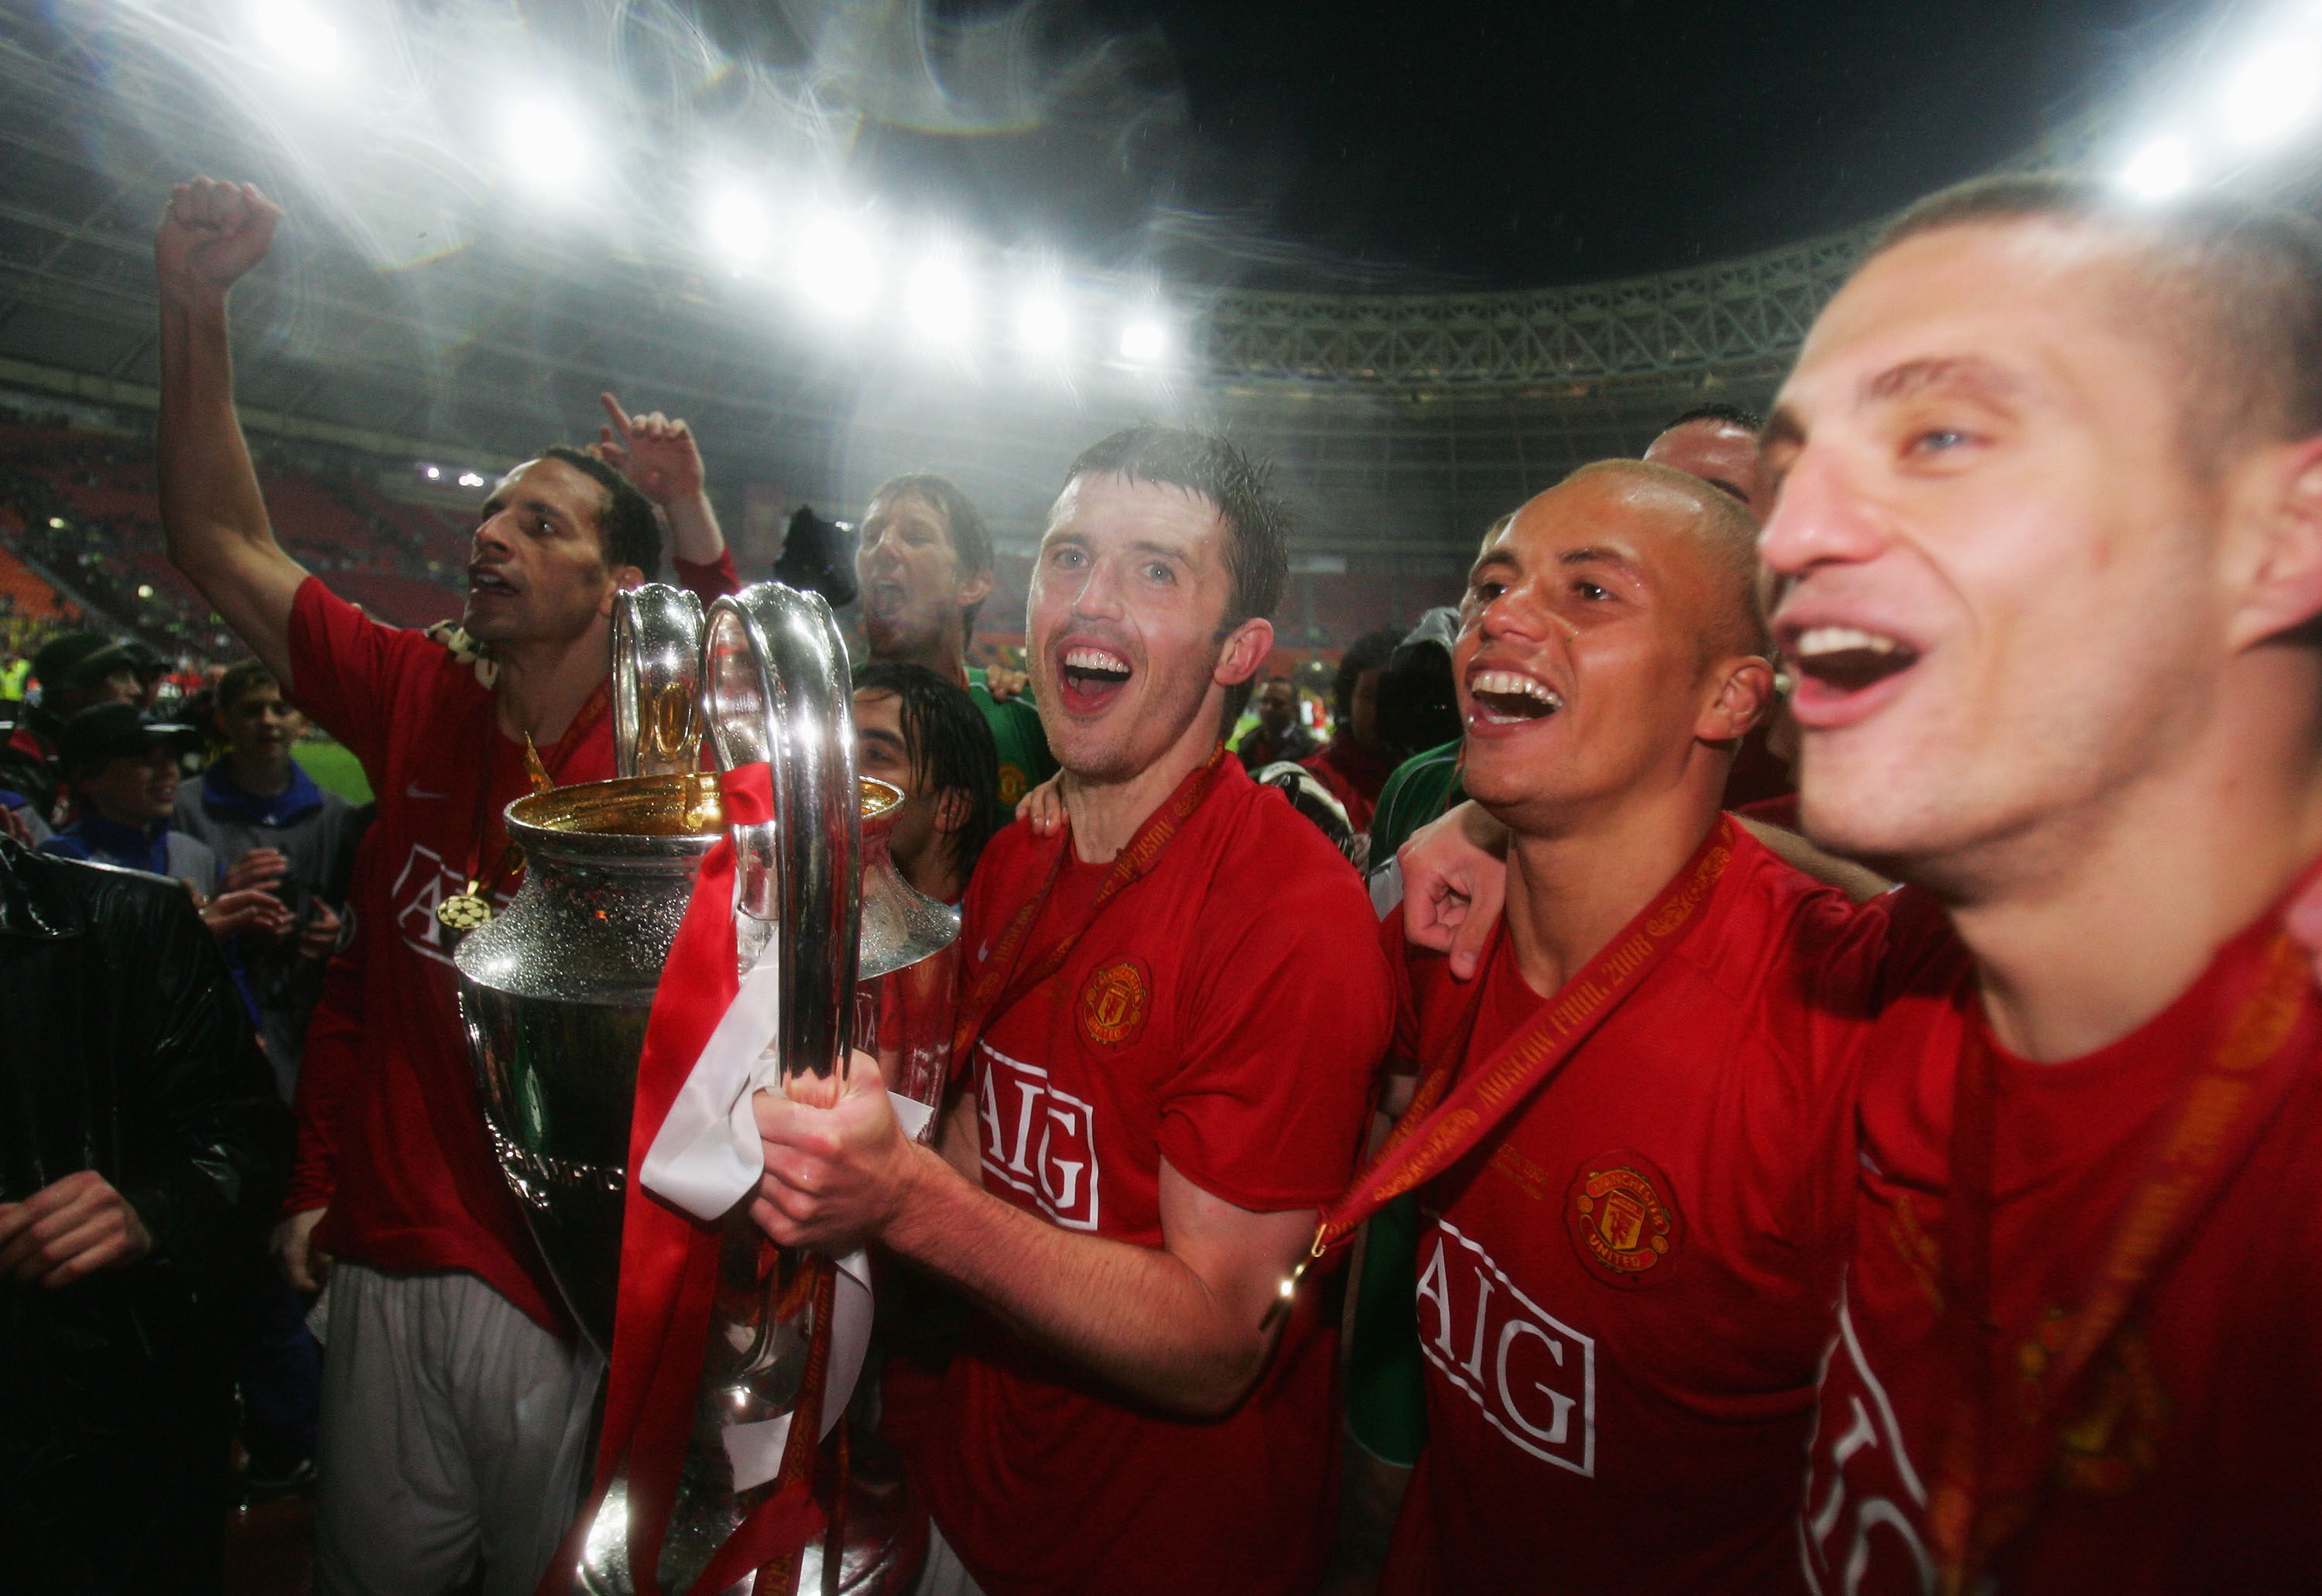 Michael Carrick (c) with the UEFA Champions League trophy in 2008.